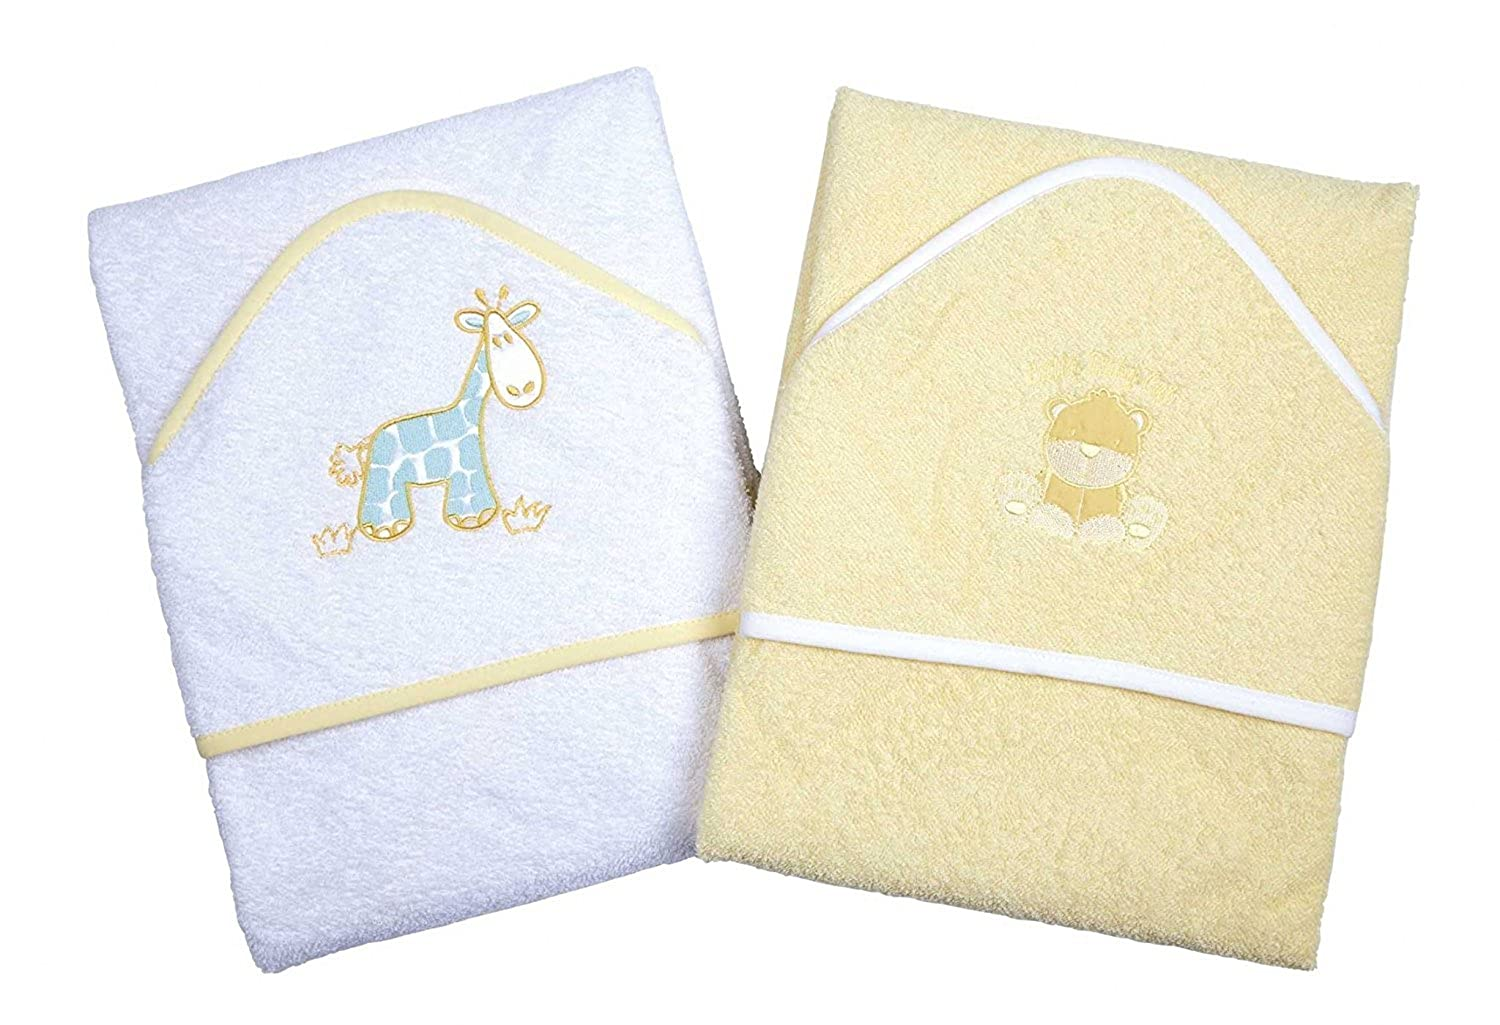 A Set of Two Luxury Hooded Baby Bath Towels 100/% Cotton In Pink or Blue with Cute Animal Appliques